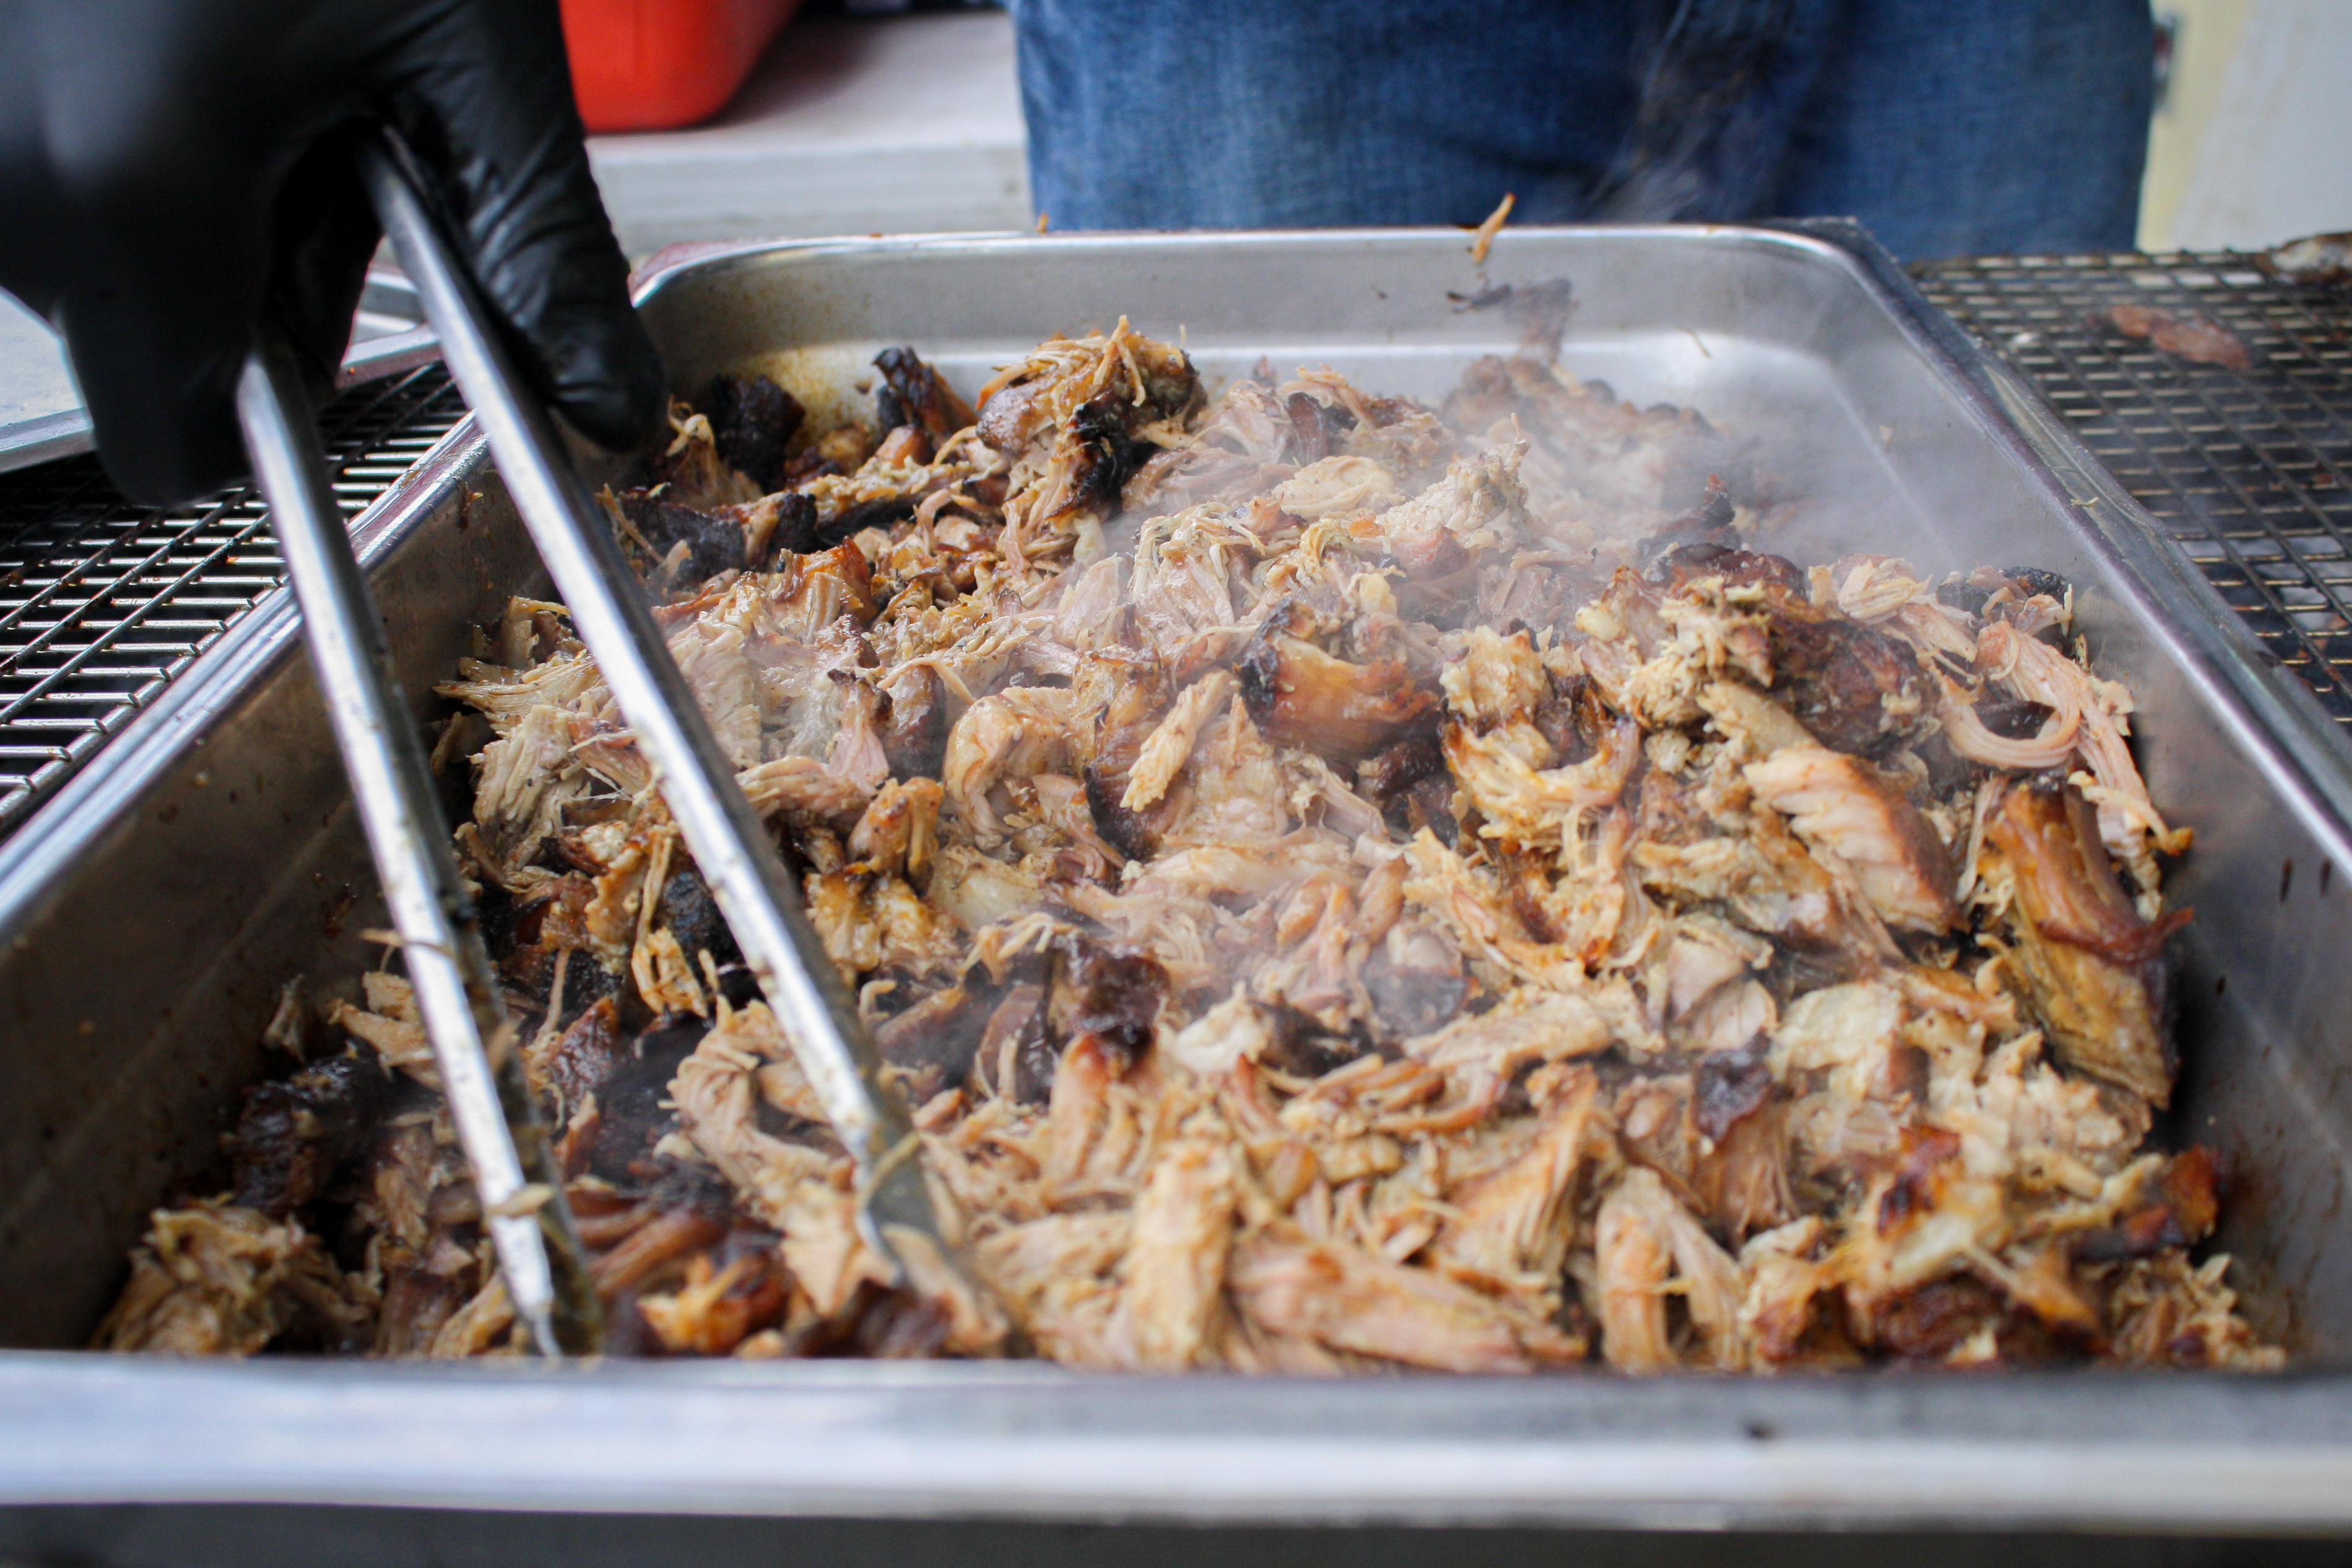 G&H Pig Palace pulled pork (Image: Chow Foods)